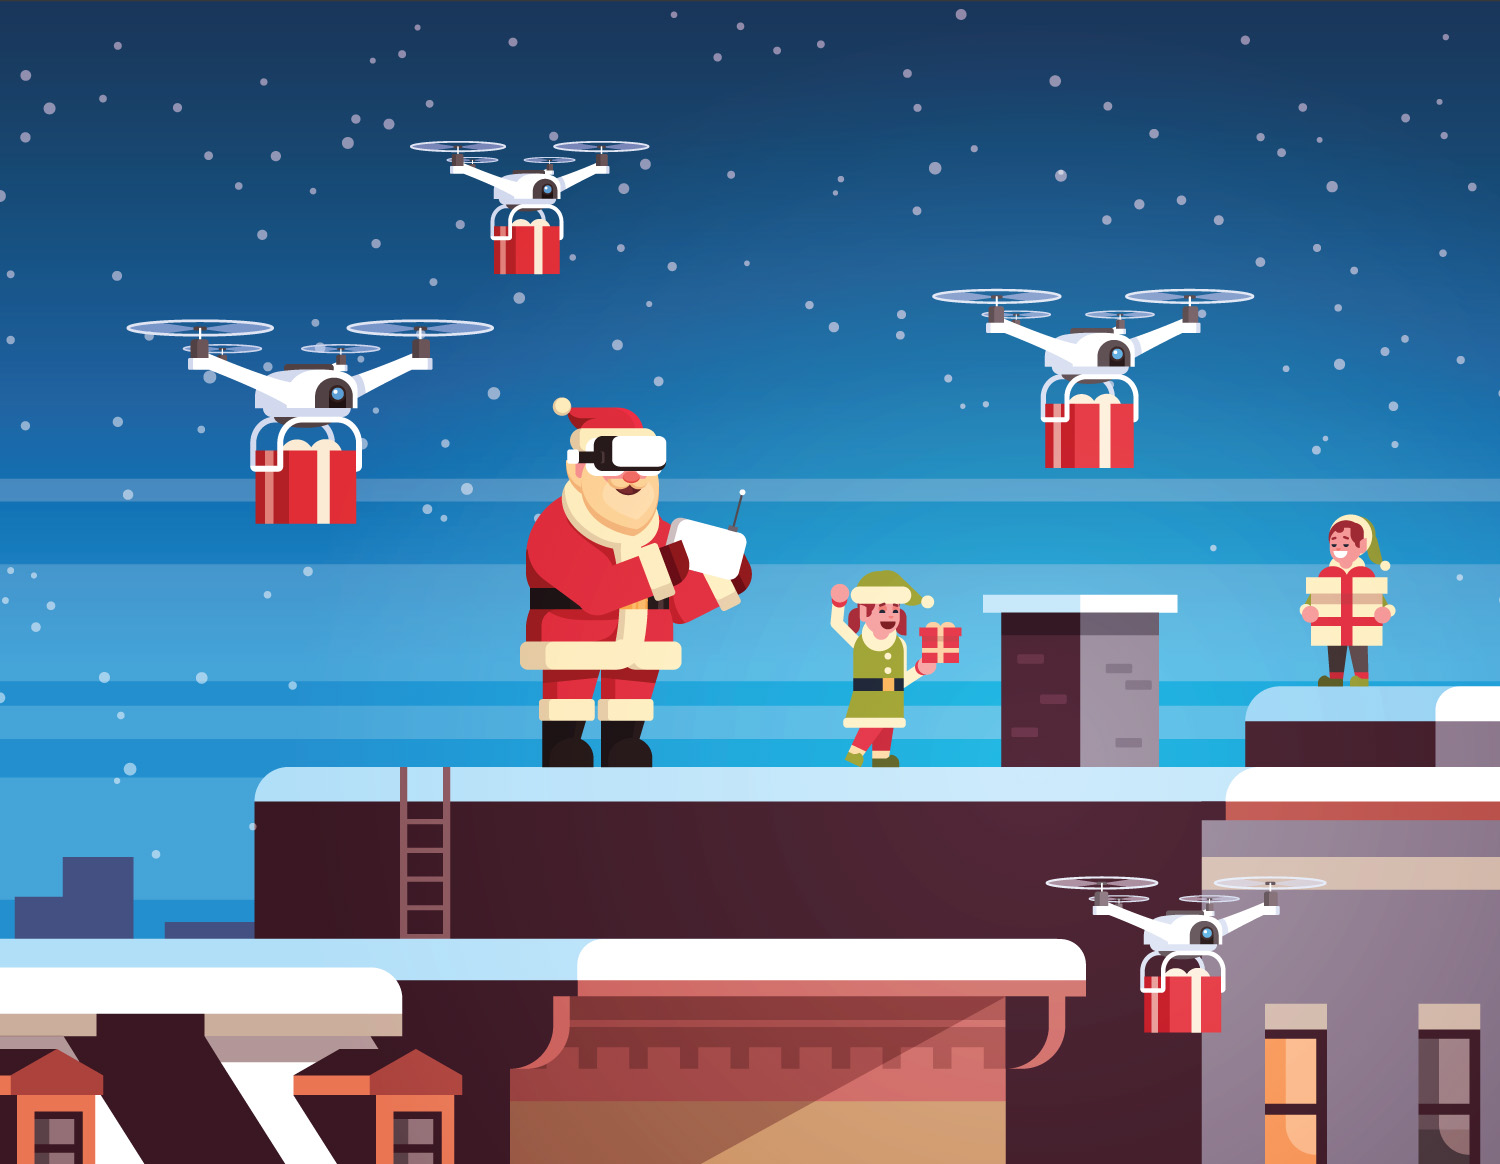 Even Santa faces mobility issues for his fleet of reindeer